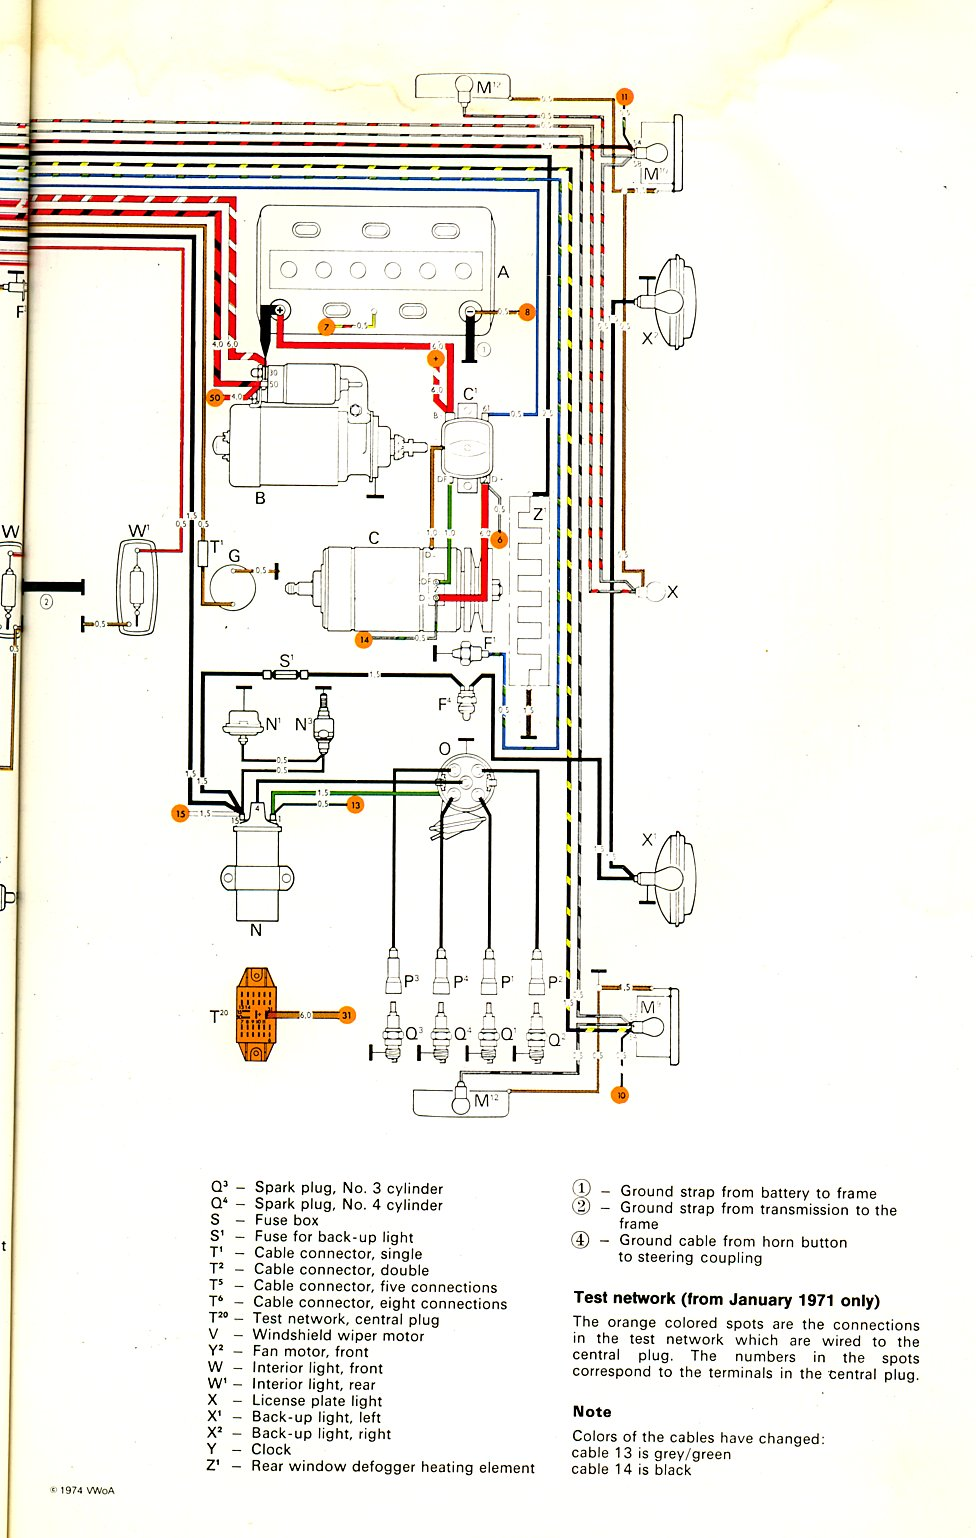 Type 2 Wiring Diagrams 1979 Chevy C10 Rear Color Code